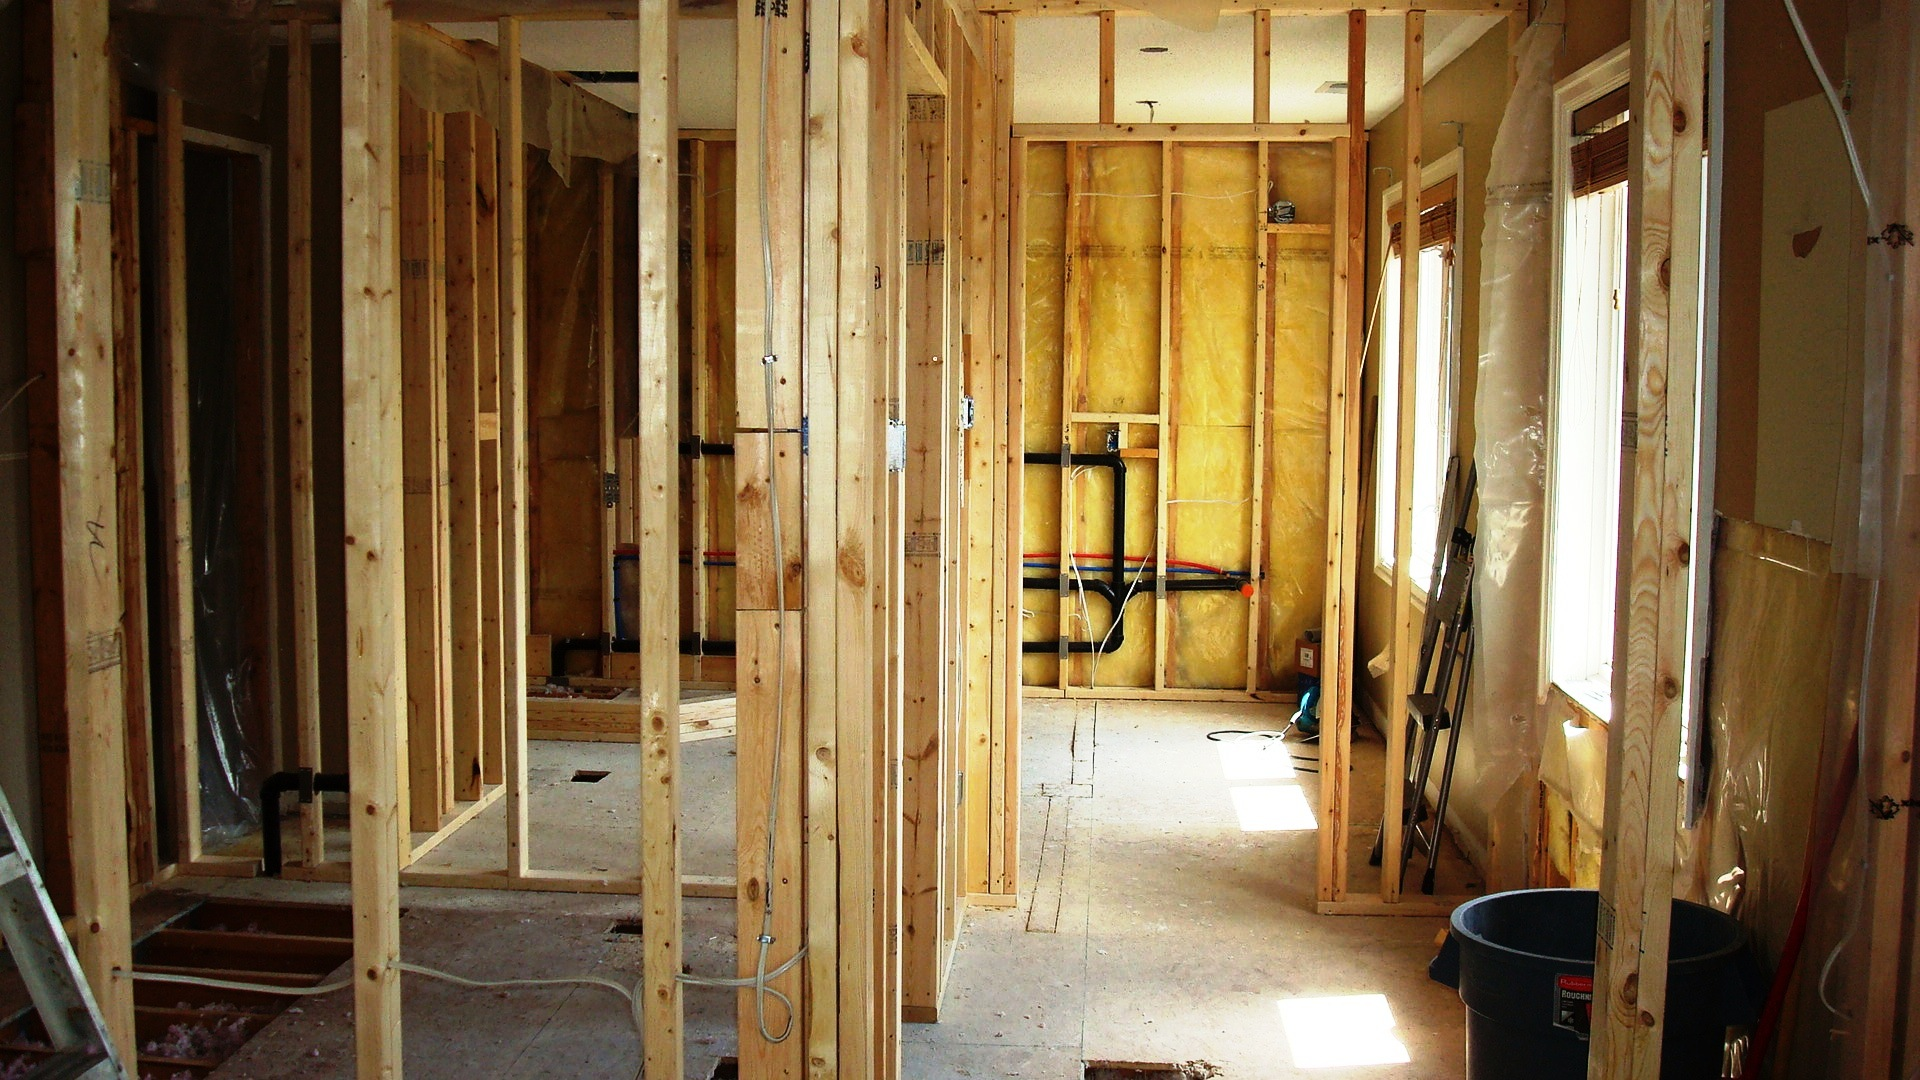 Interior Renovation Bathroom Remodel – Bathroom Construction